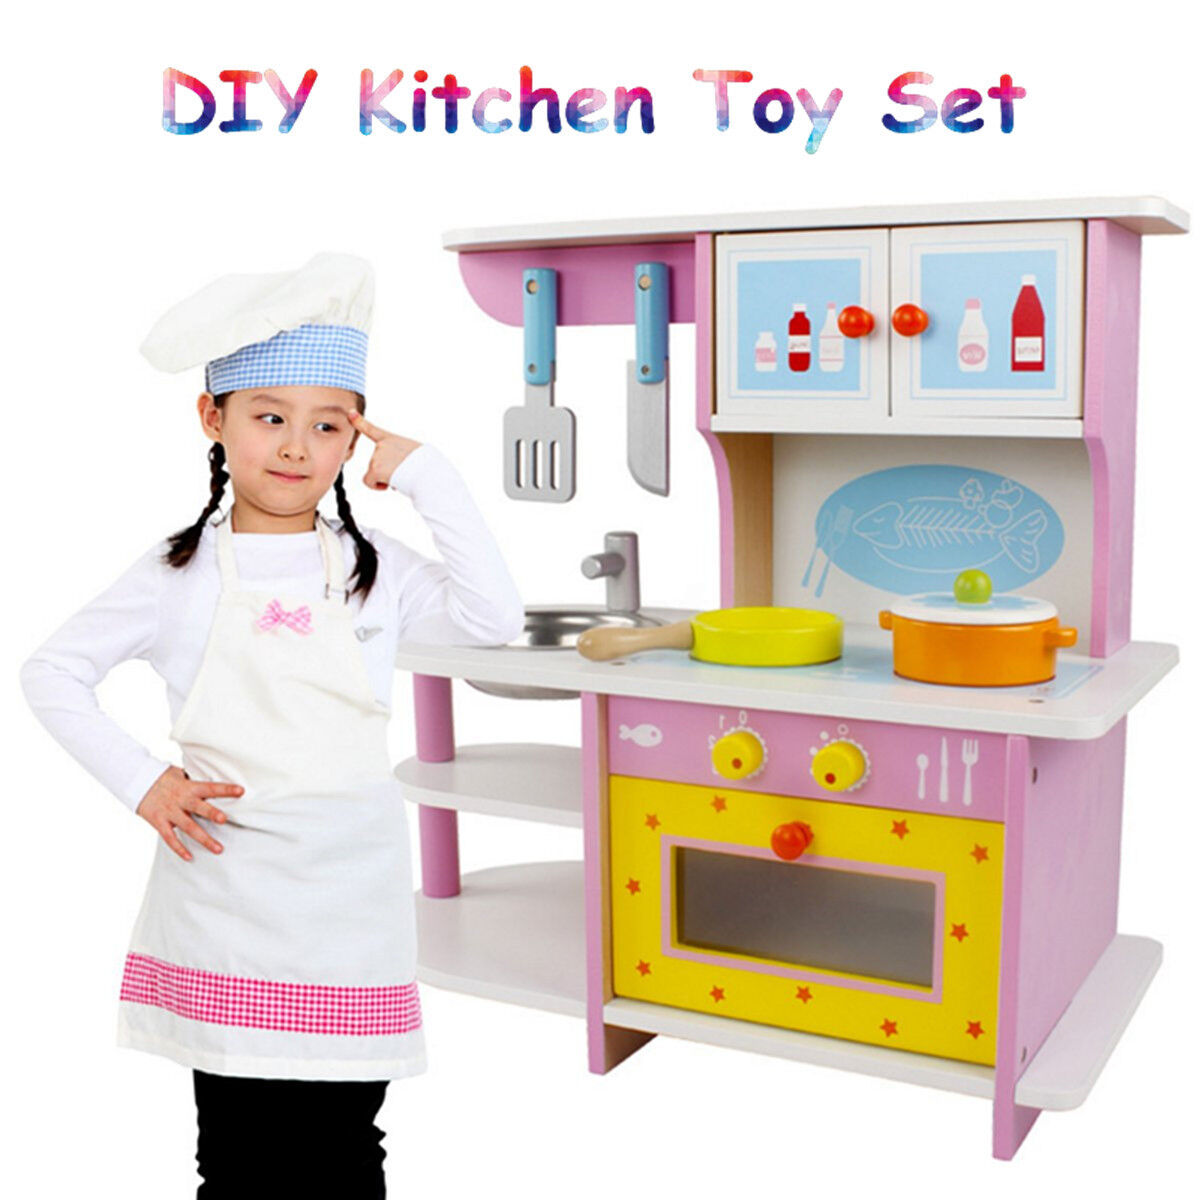 Pink Girl Kid Wooden Kitchen Role Play Play Play Set Pretend Toy DollHouse Furniture Decor 262a68